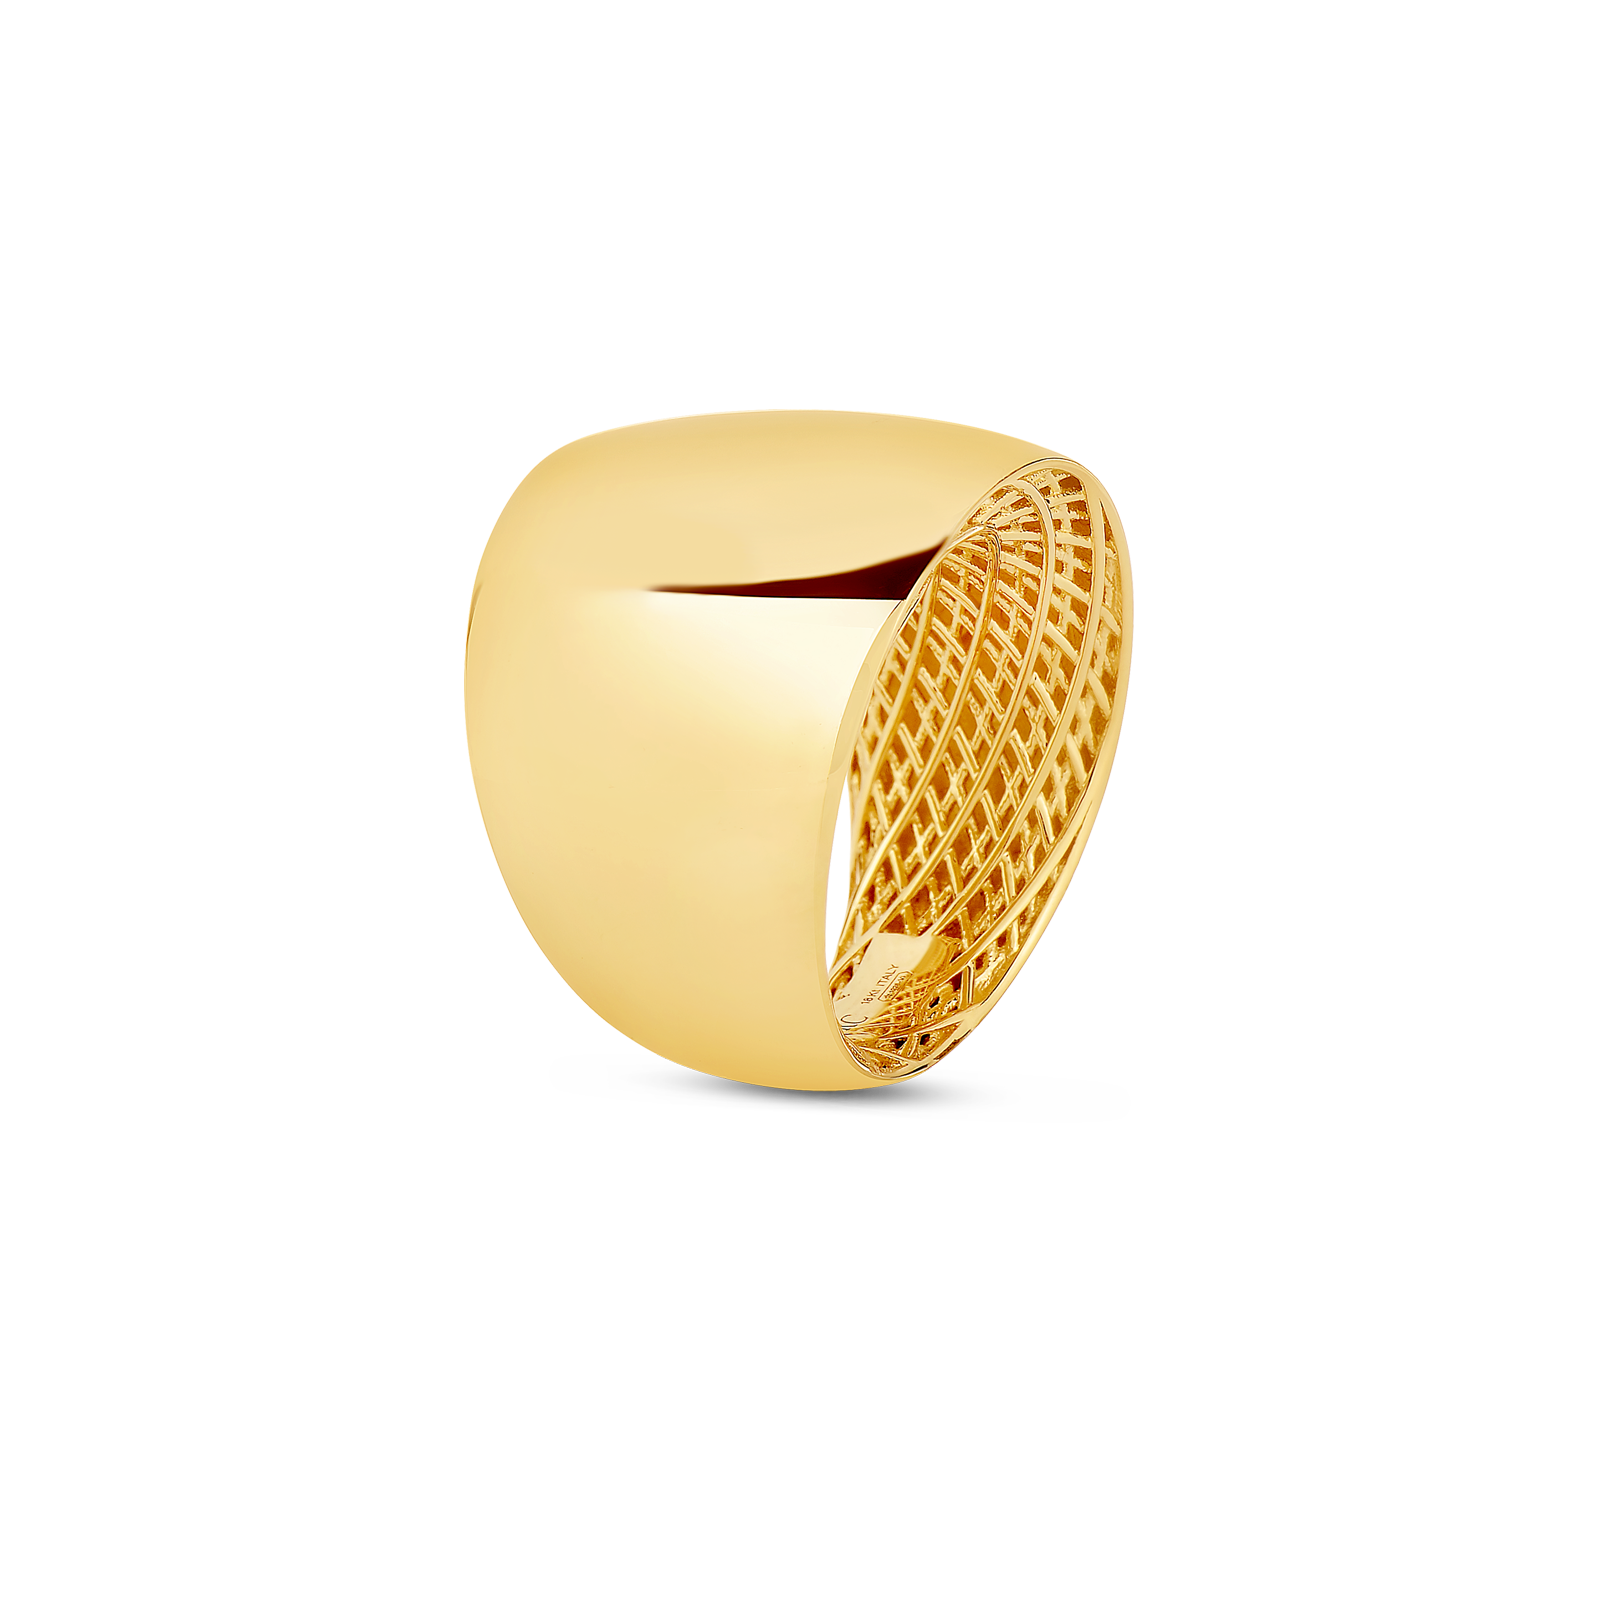 Roberto-Coin-Golden-Gate-18K-Yellow-Gold-Ring-7771091AY650_SIDE